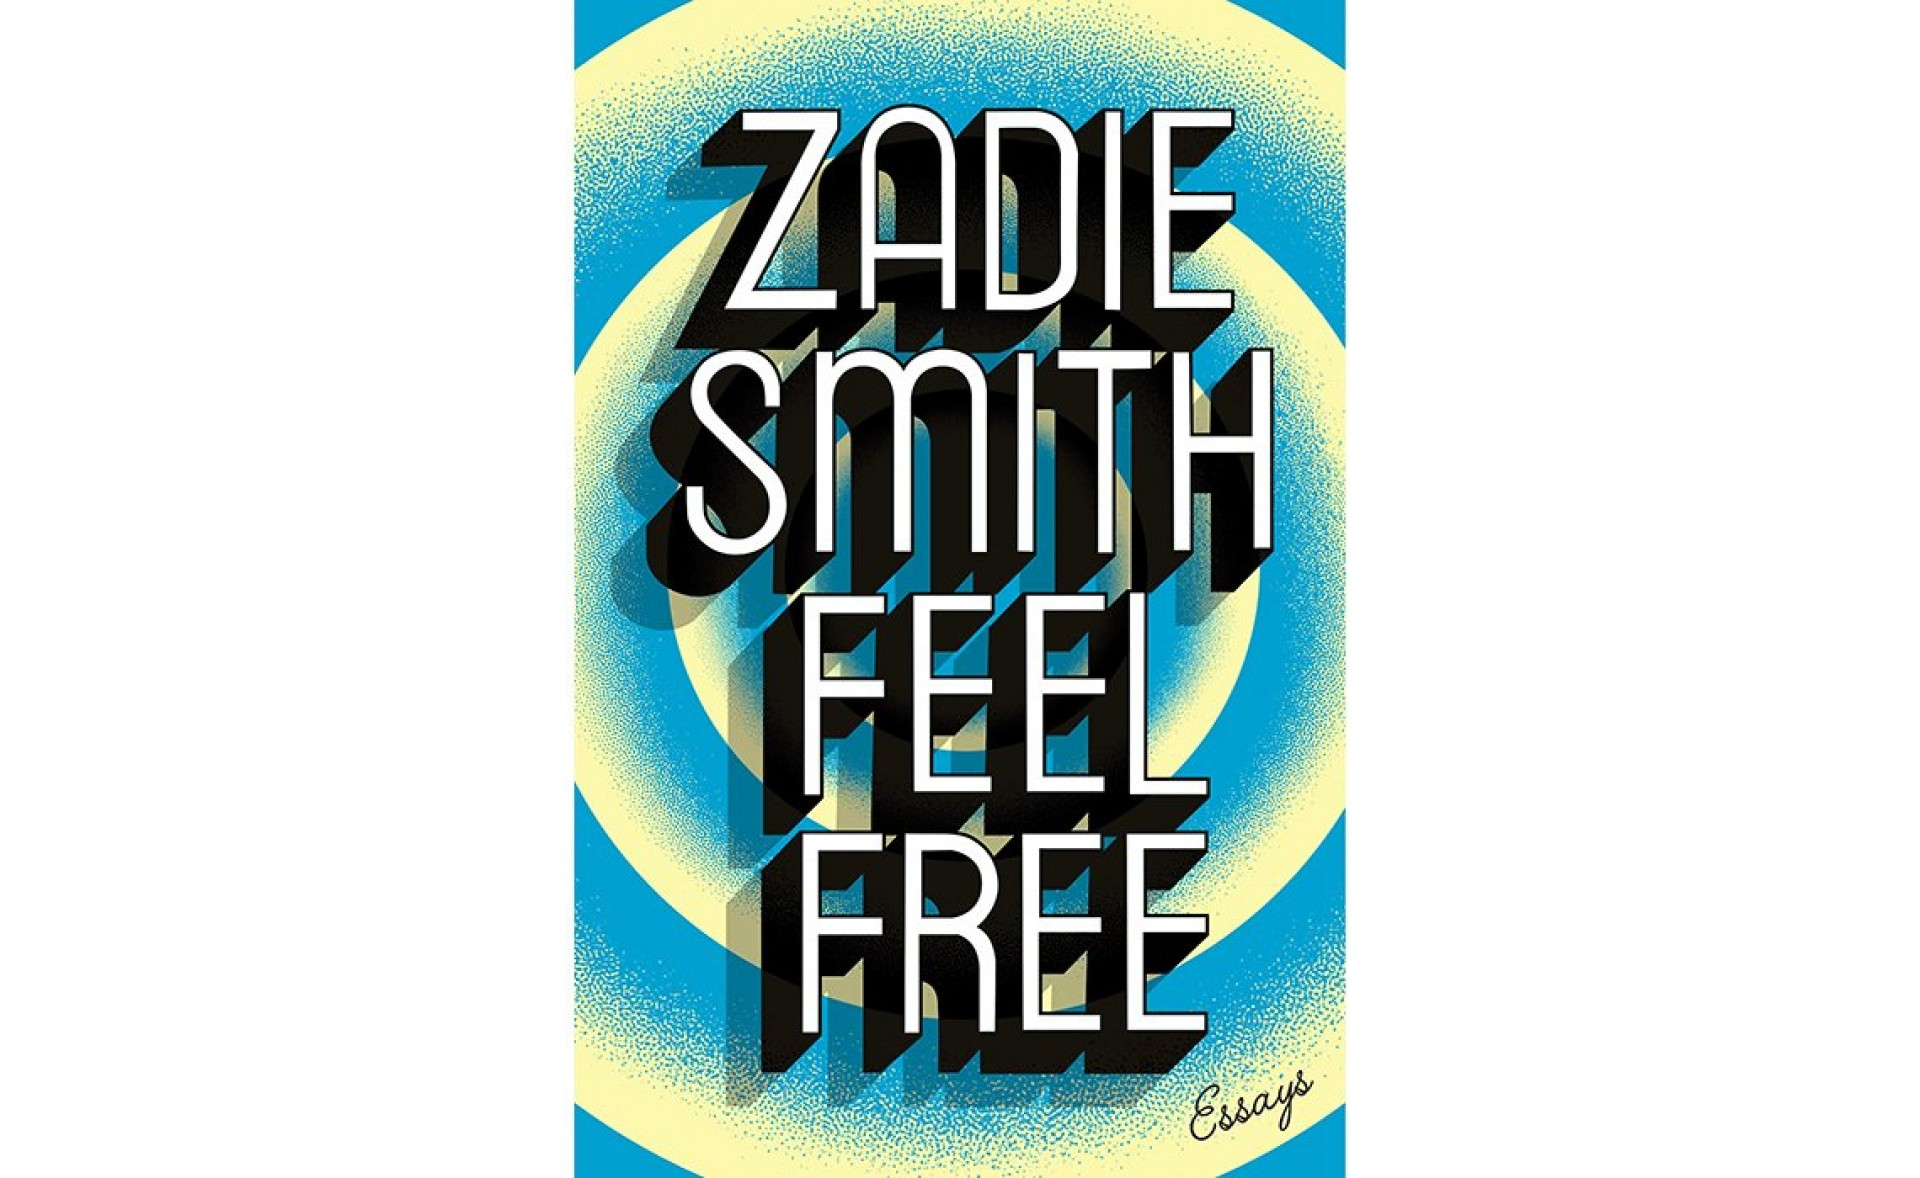 010 Feelfreezadiesmithitokatnoa7ej Essay Example Zadie Smith Wonderful Essays Amazon Radio 4 1920